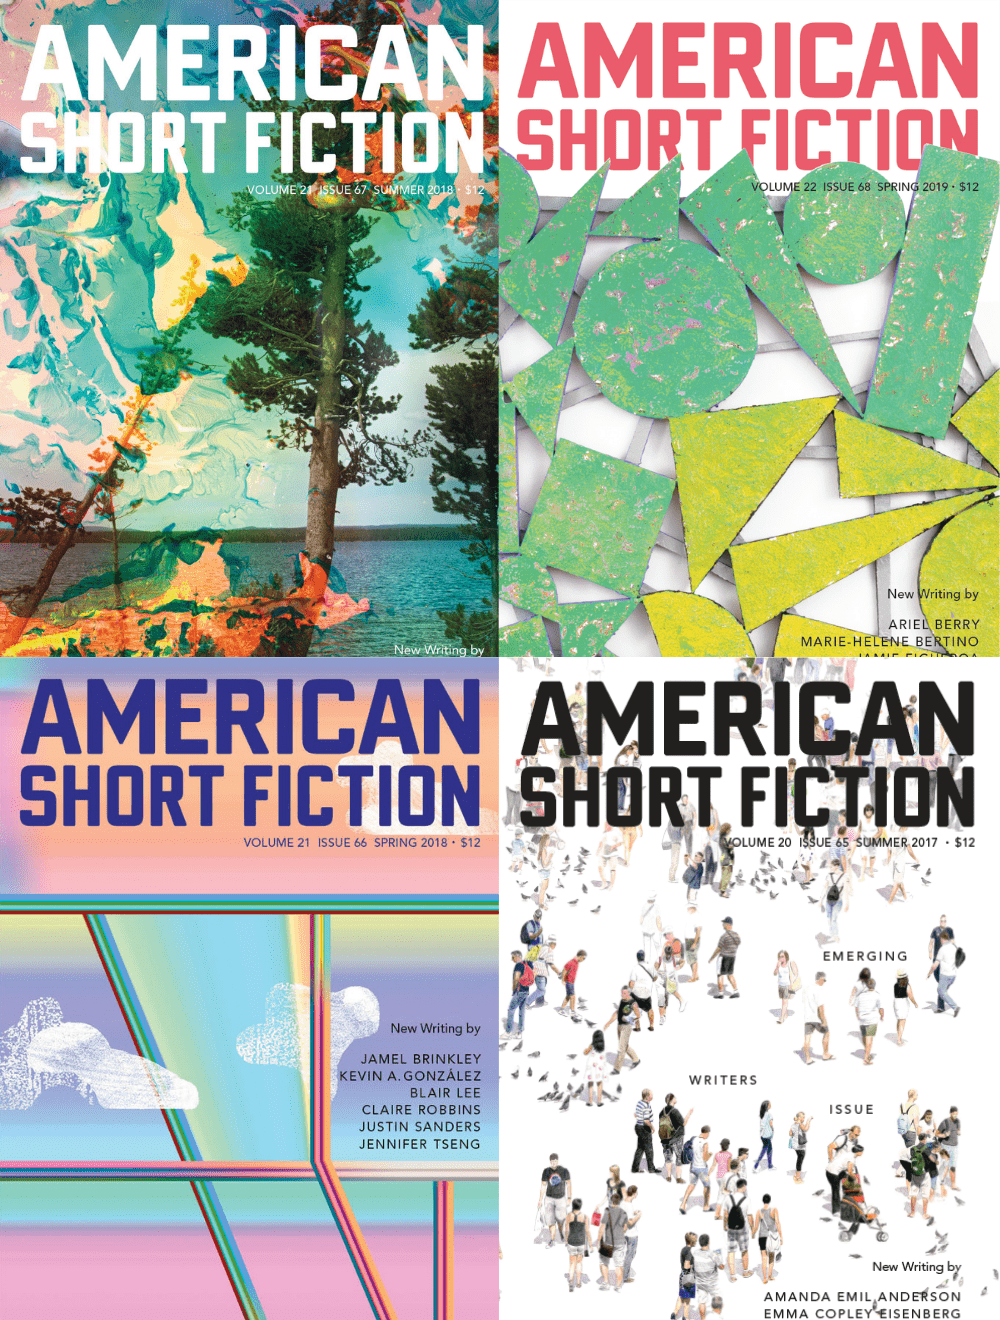 Collage of literary magazine covers